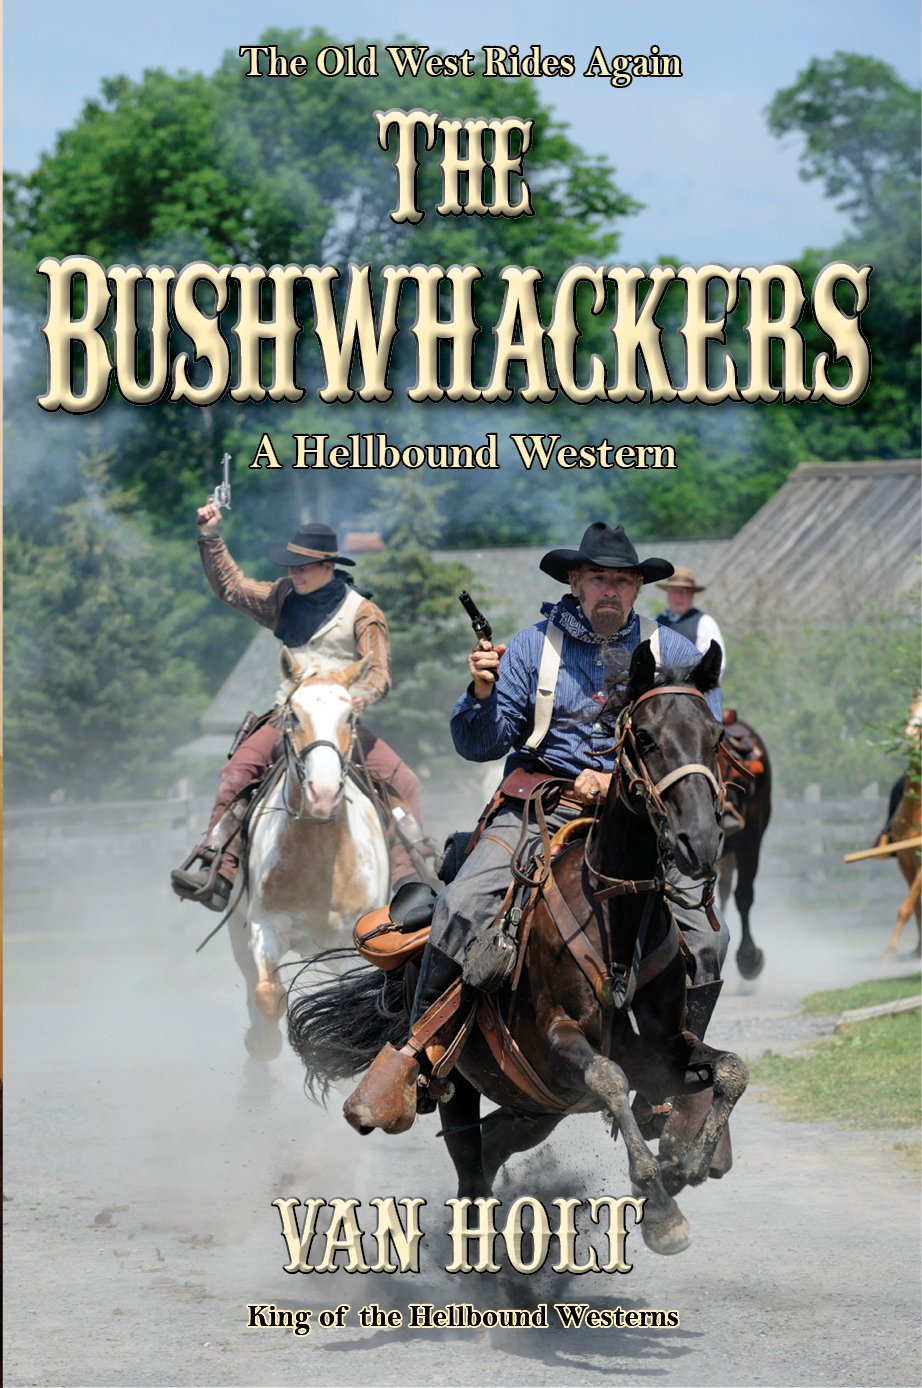 Bushwhackers-cover-final